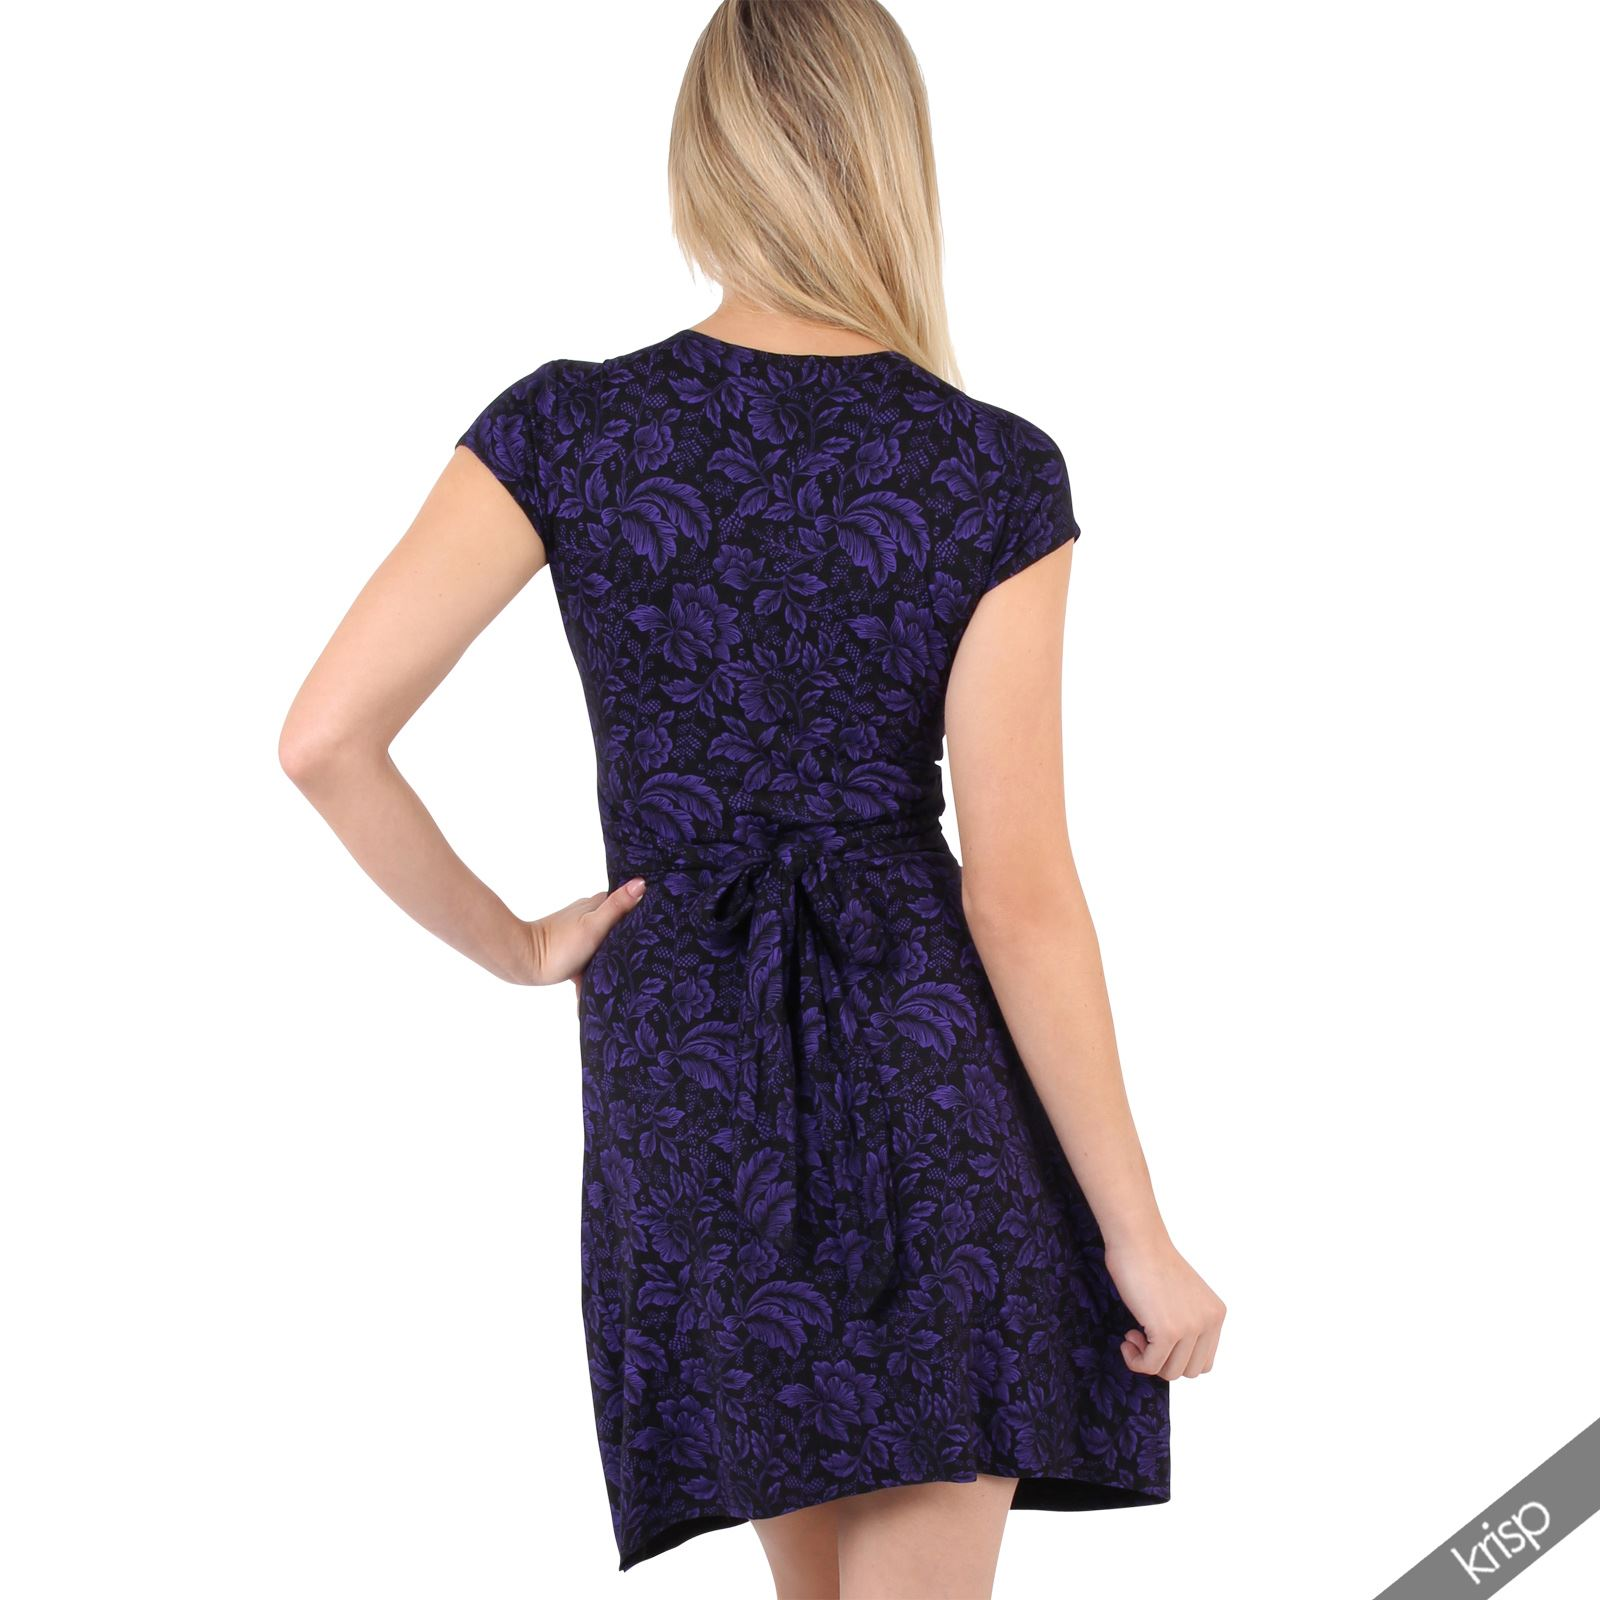 Womens-Ladies-V-Neck-Mini-Midi-Dress-Floral-Print-Knot-Short-Skirt-Party-Casual thumbnail 14